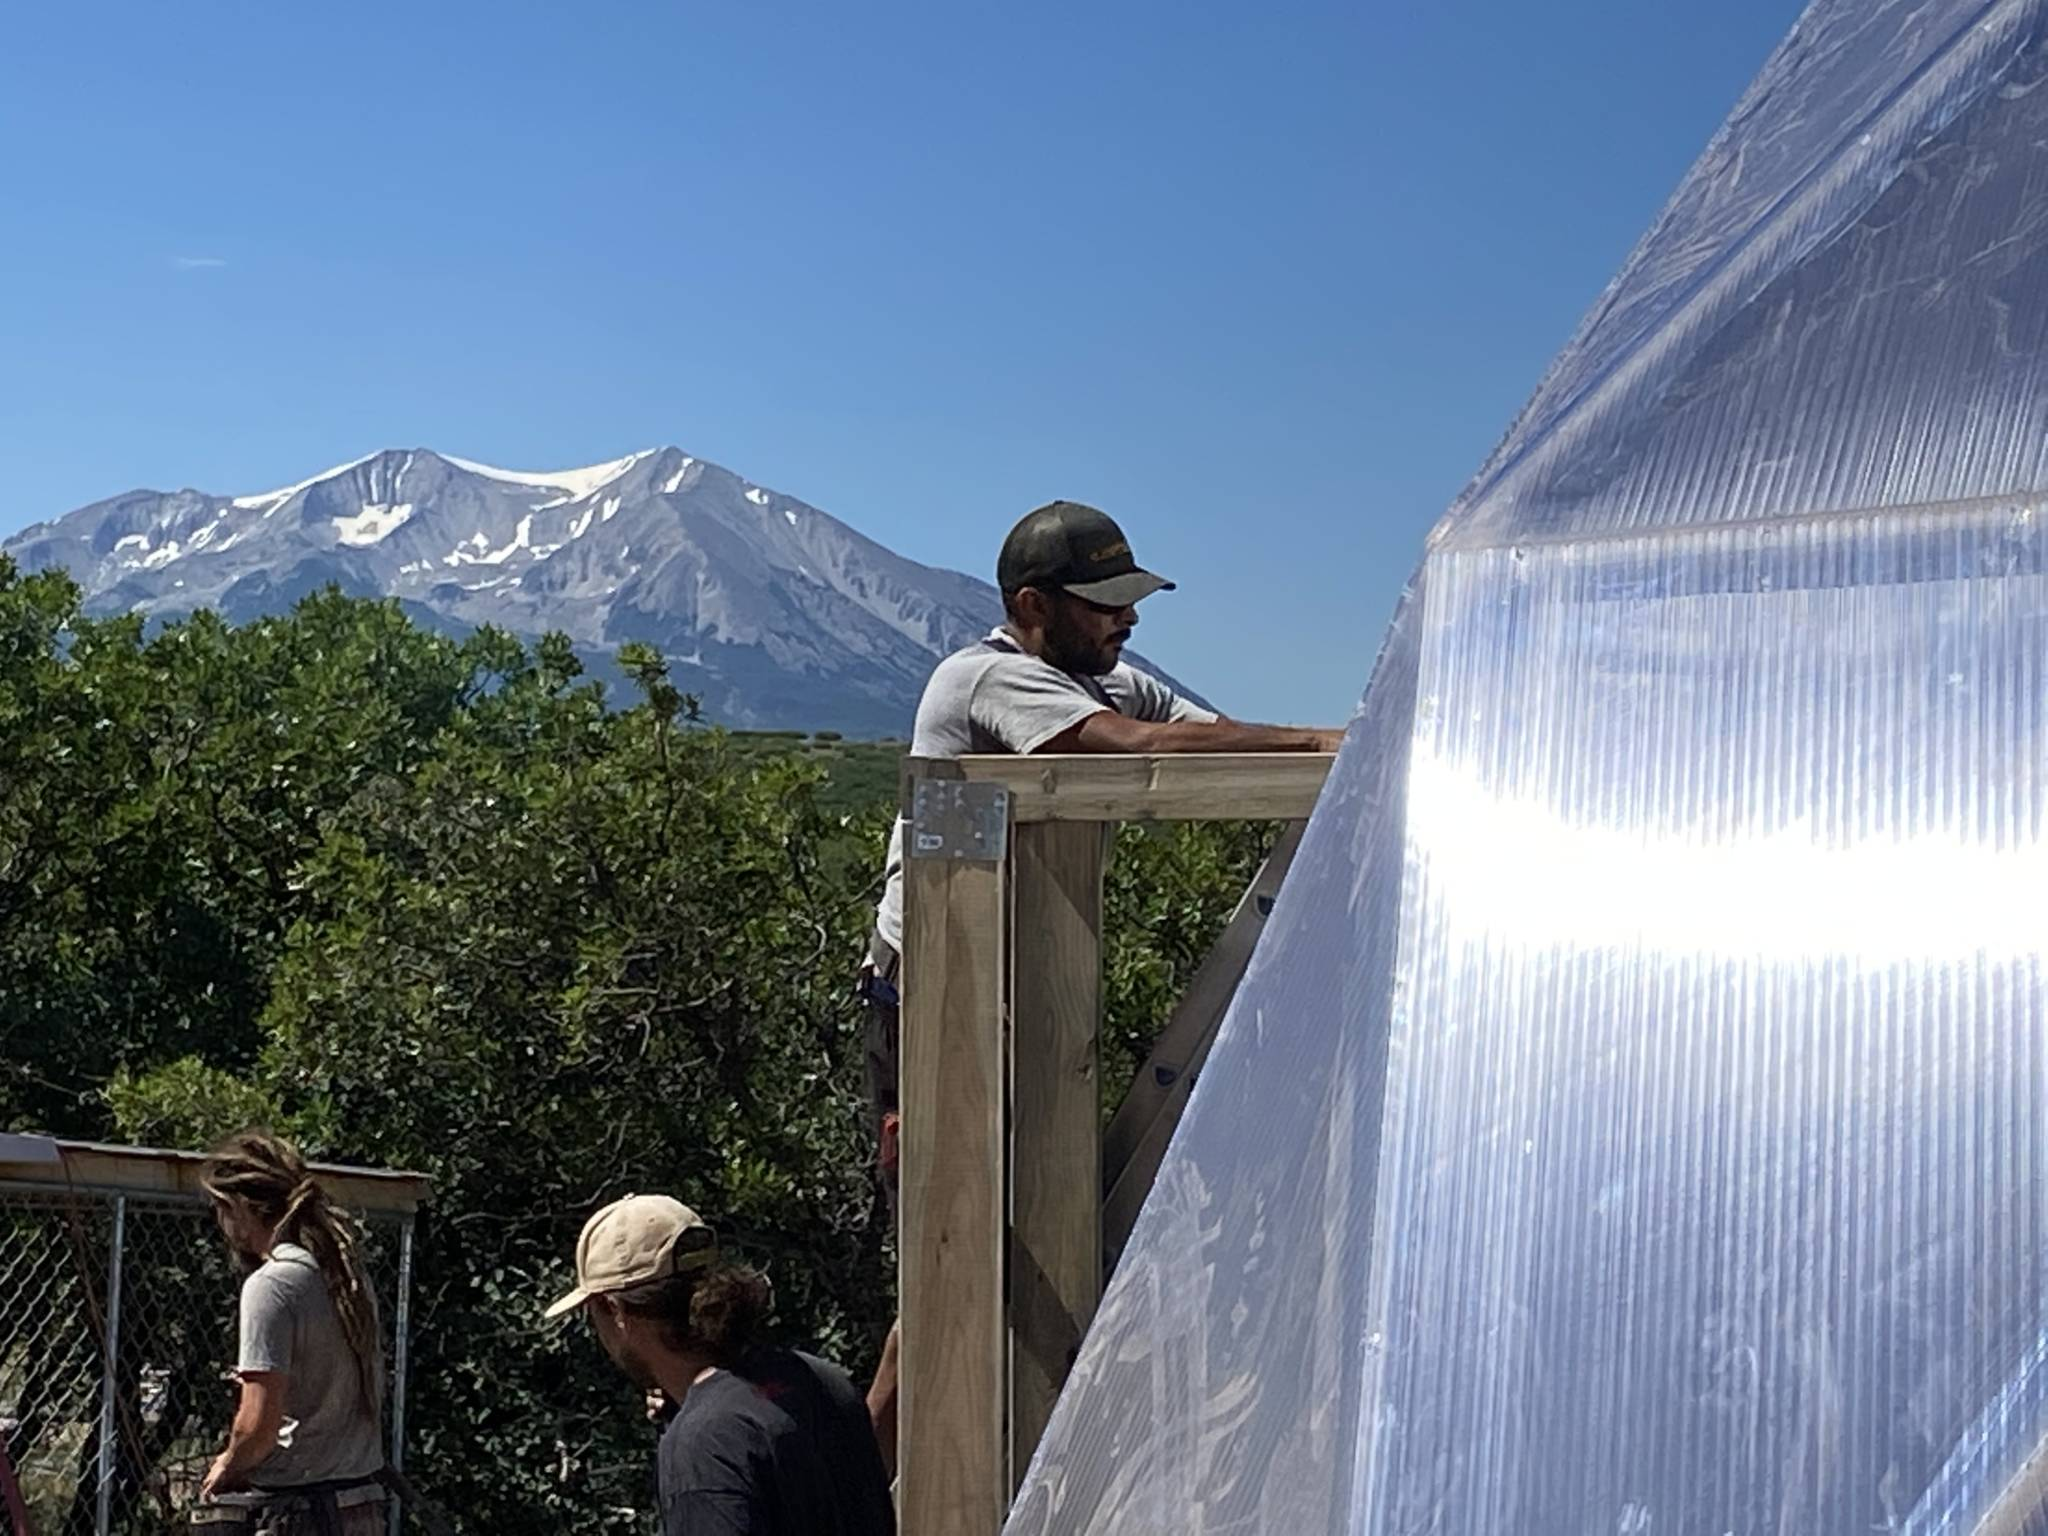 New 33' Growing Dome being built in Carbondale, with view of Mt. Sopris